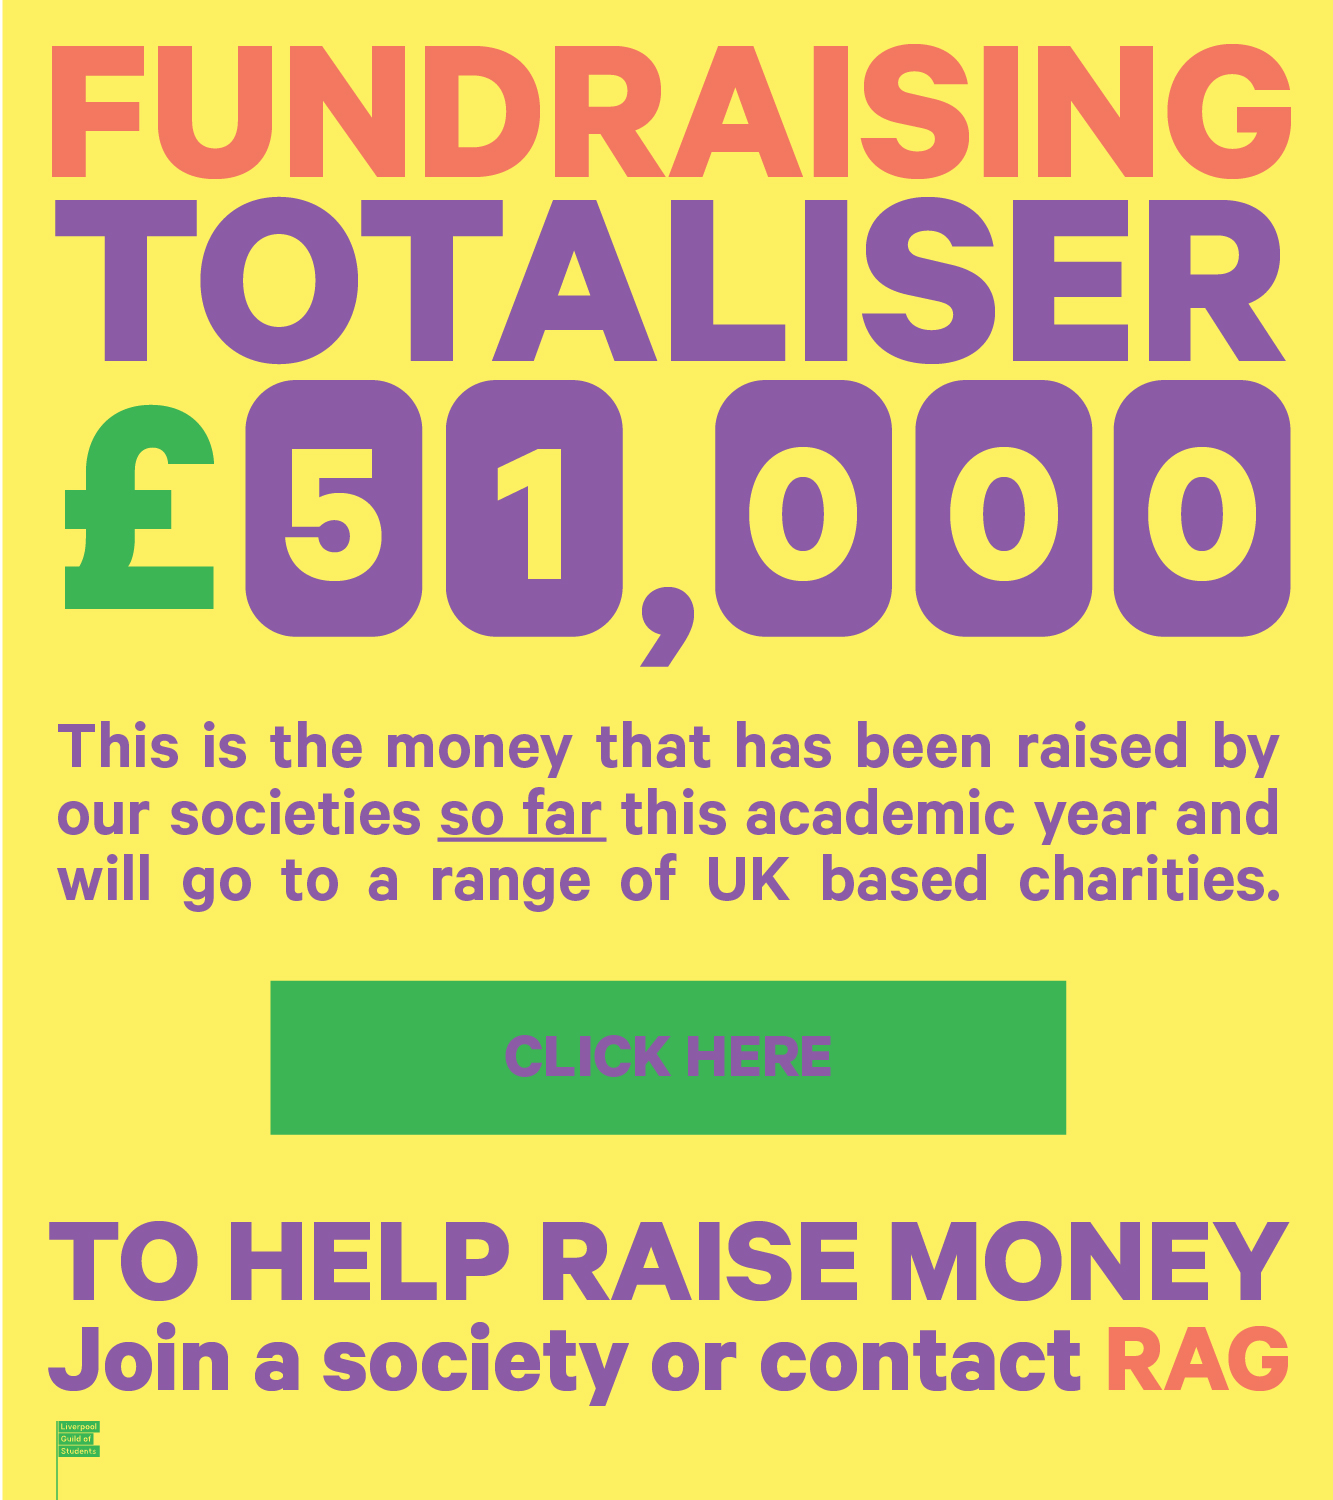 University of liverpool Students Union Fundraising Totaliser